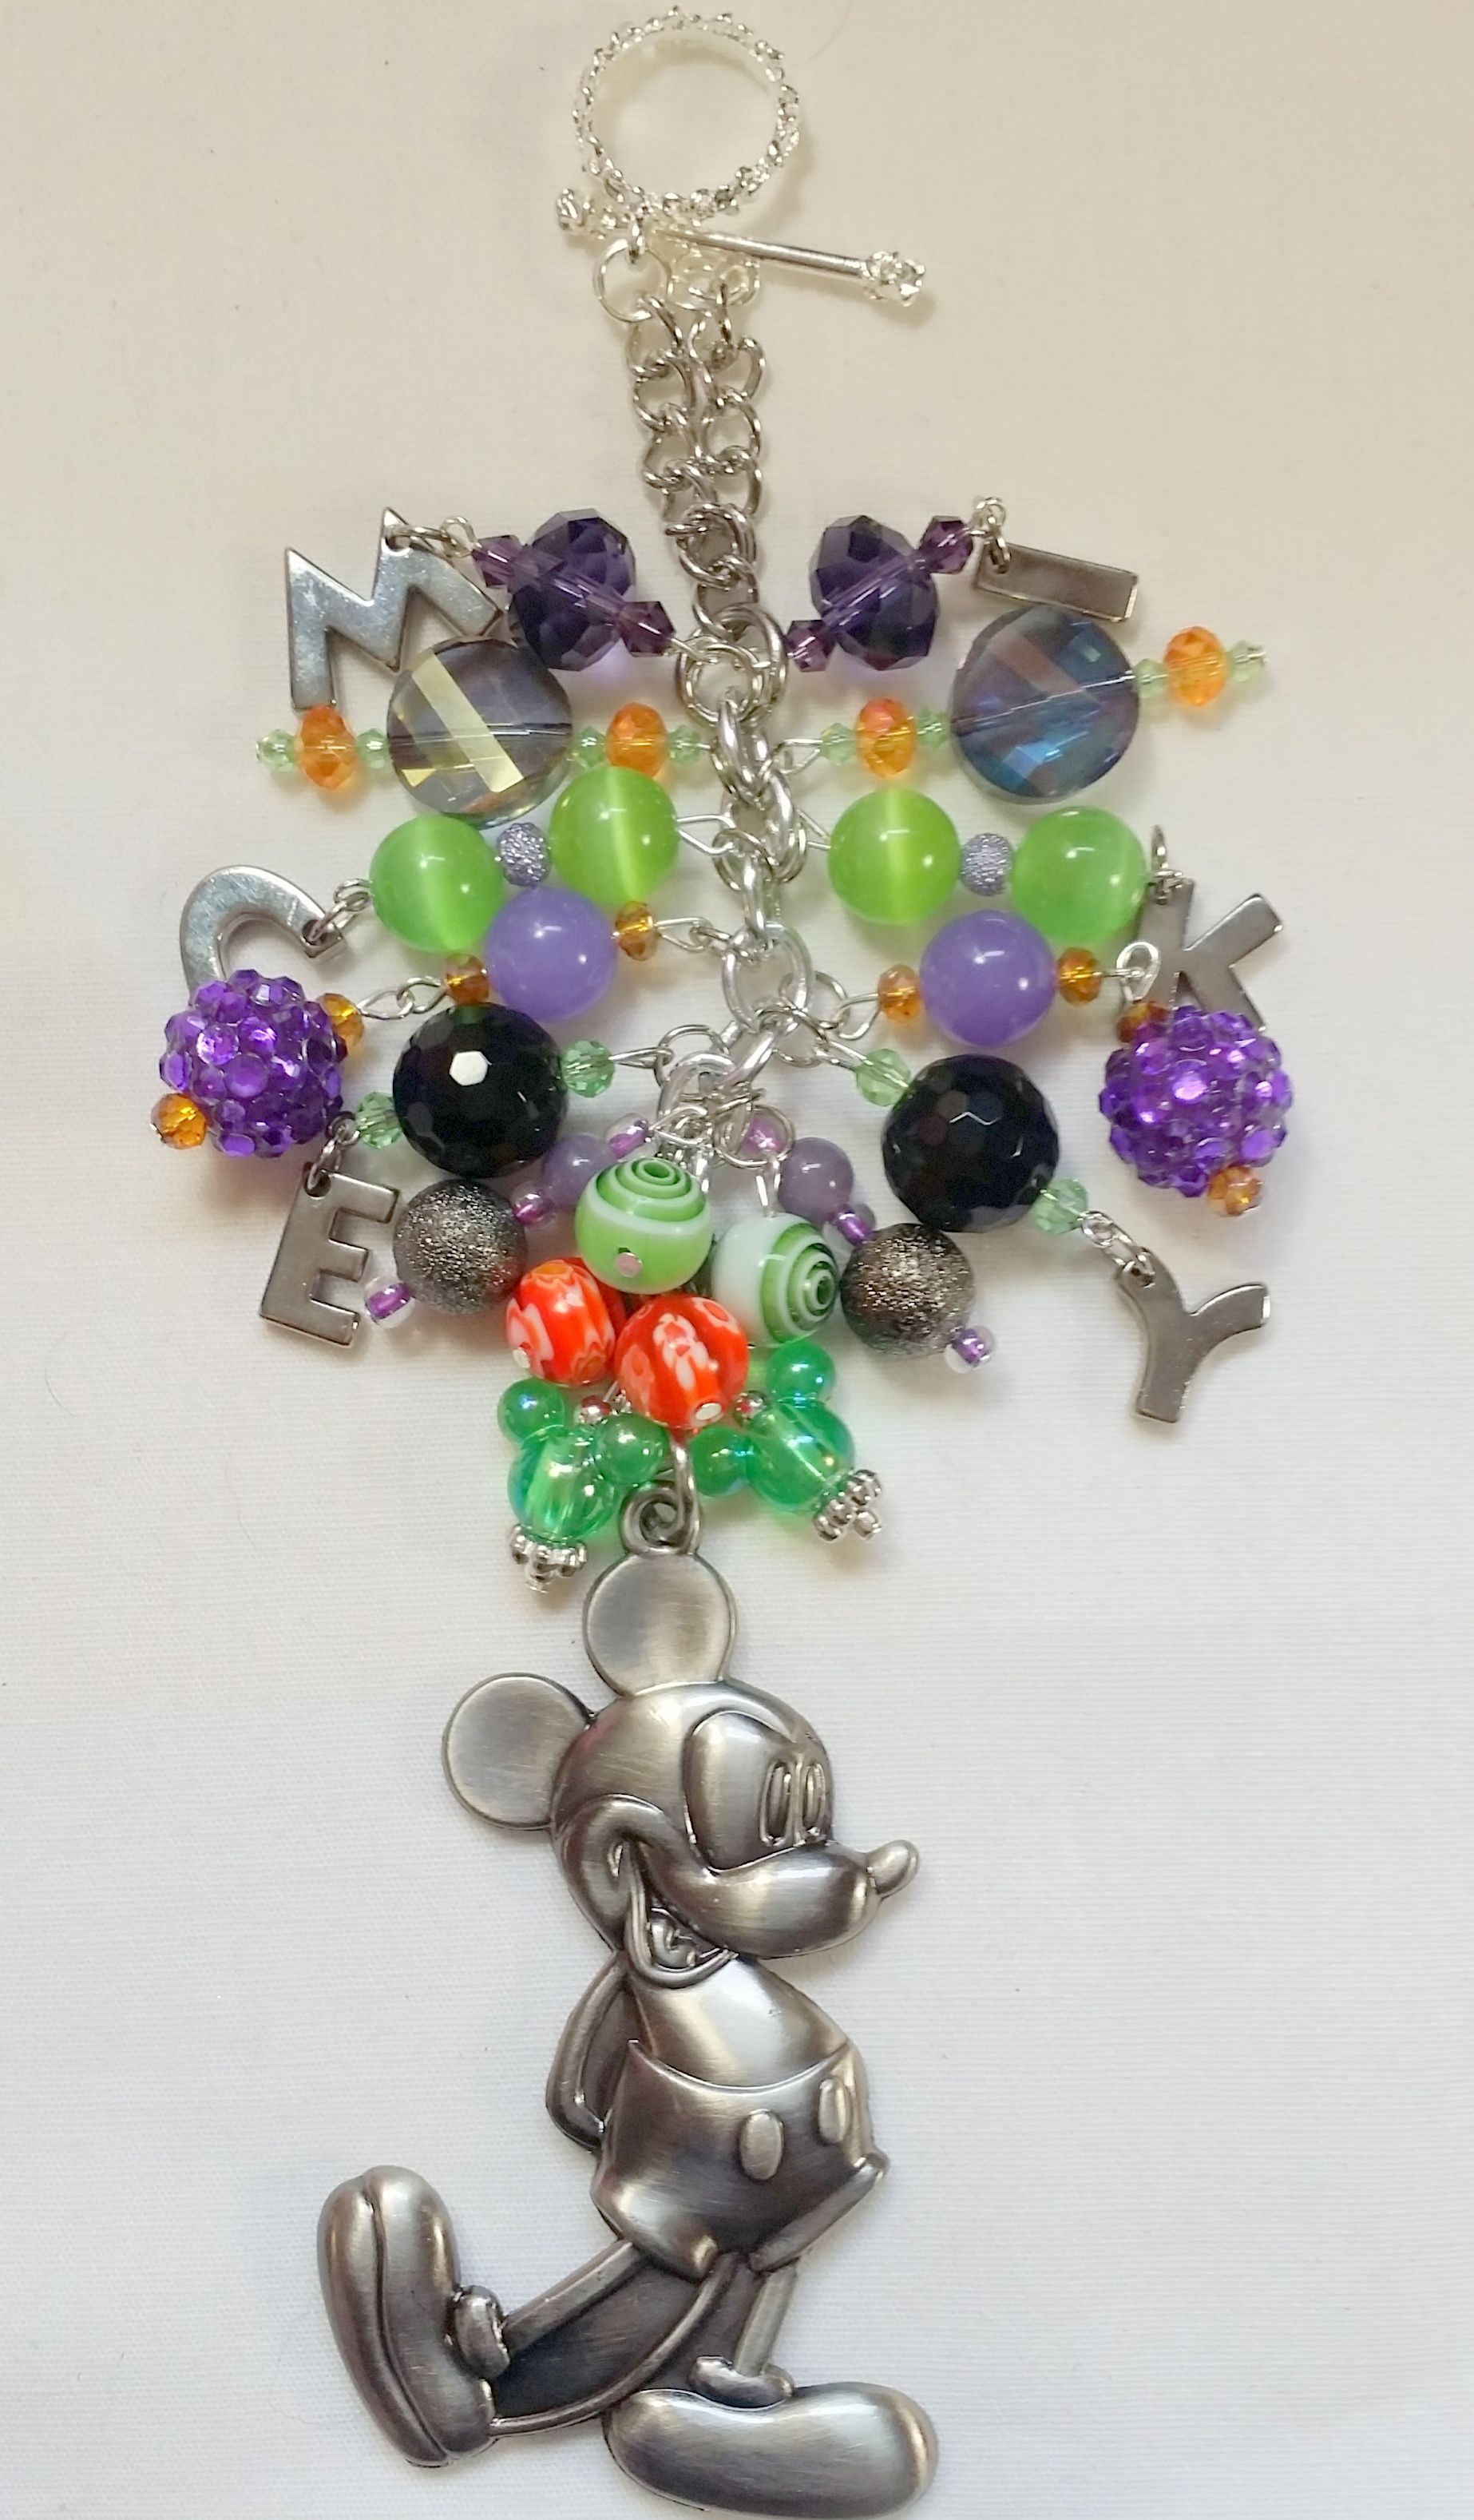 Mickey Purse Charm   ~ available at https://www.etsy.com/shop/magic365